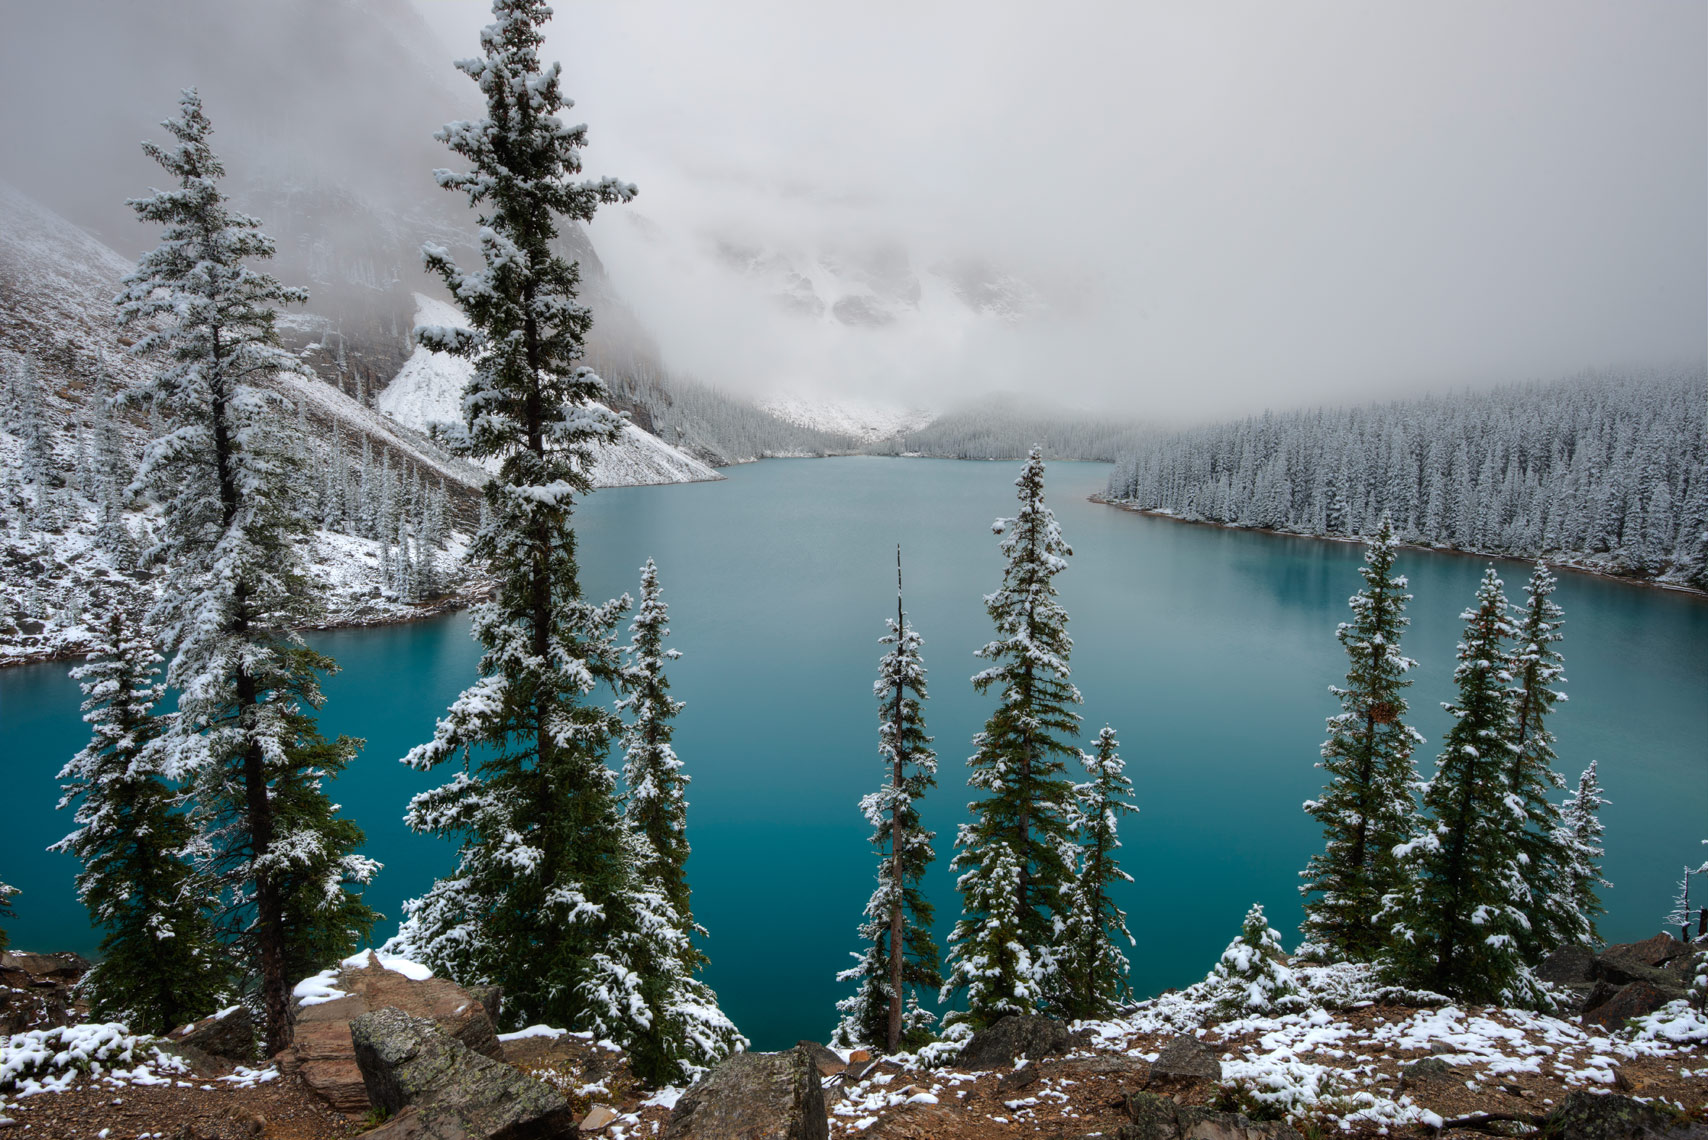 Early Snowfall, Moraine Lake, Banff National Park, Alberta, Canada